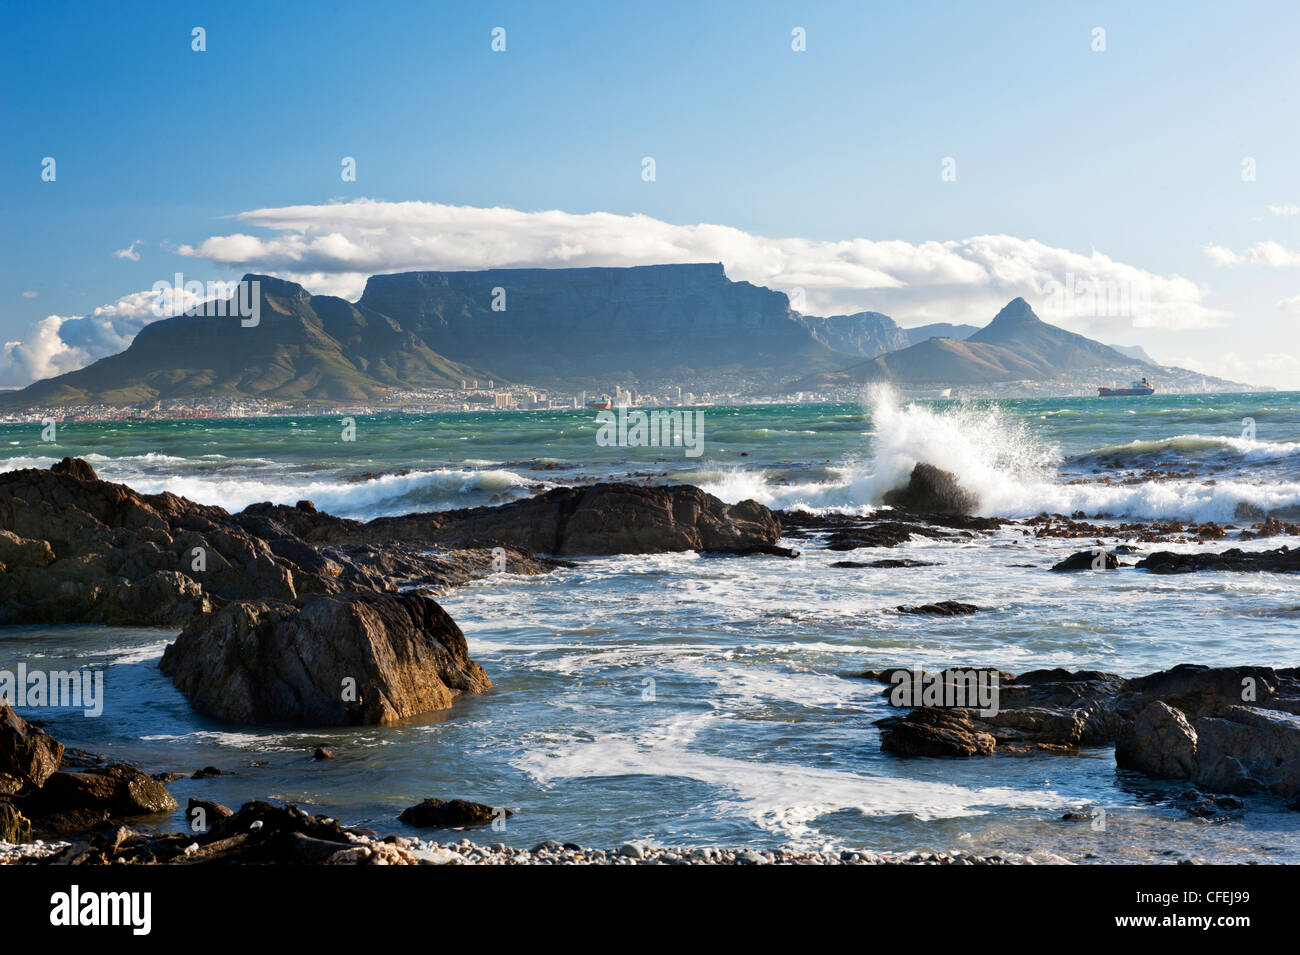 Cape Town and Table Mountain from Blouberg - Stock Image